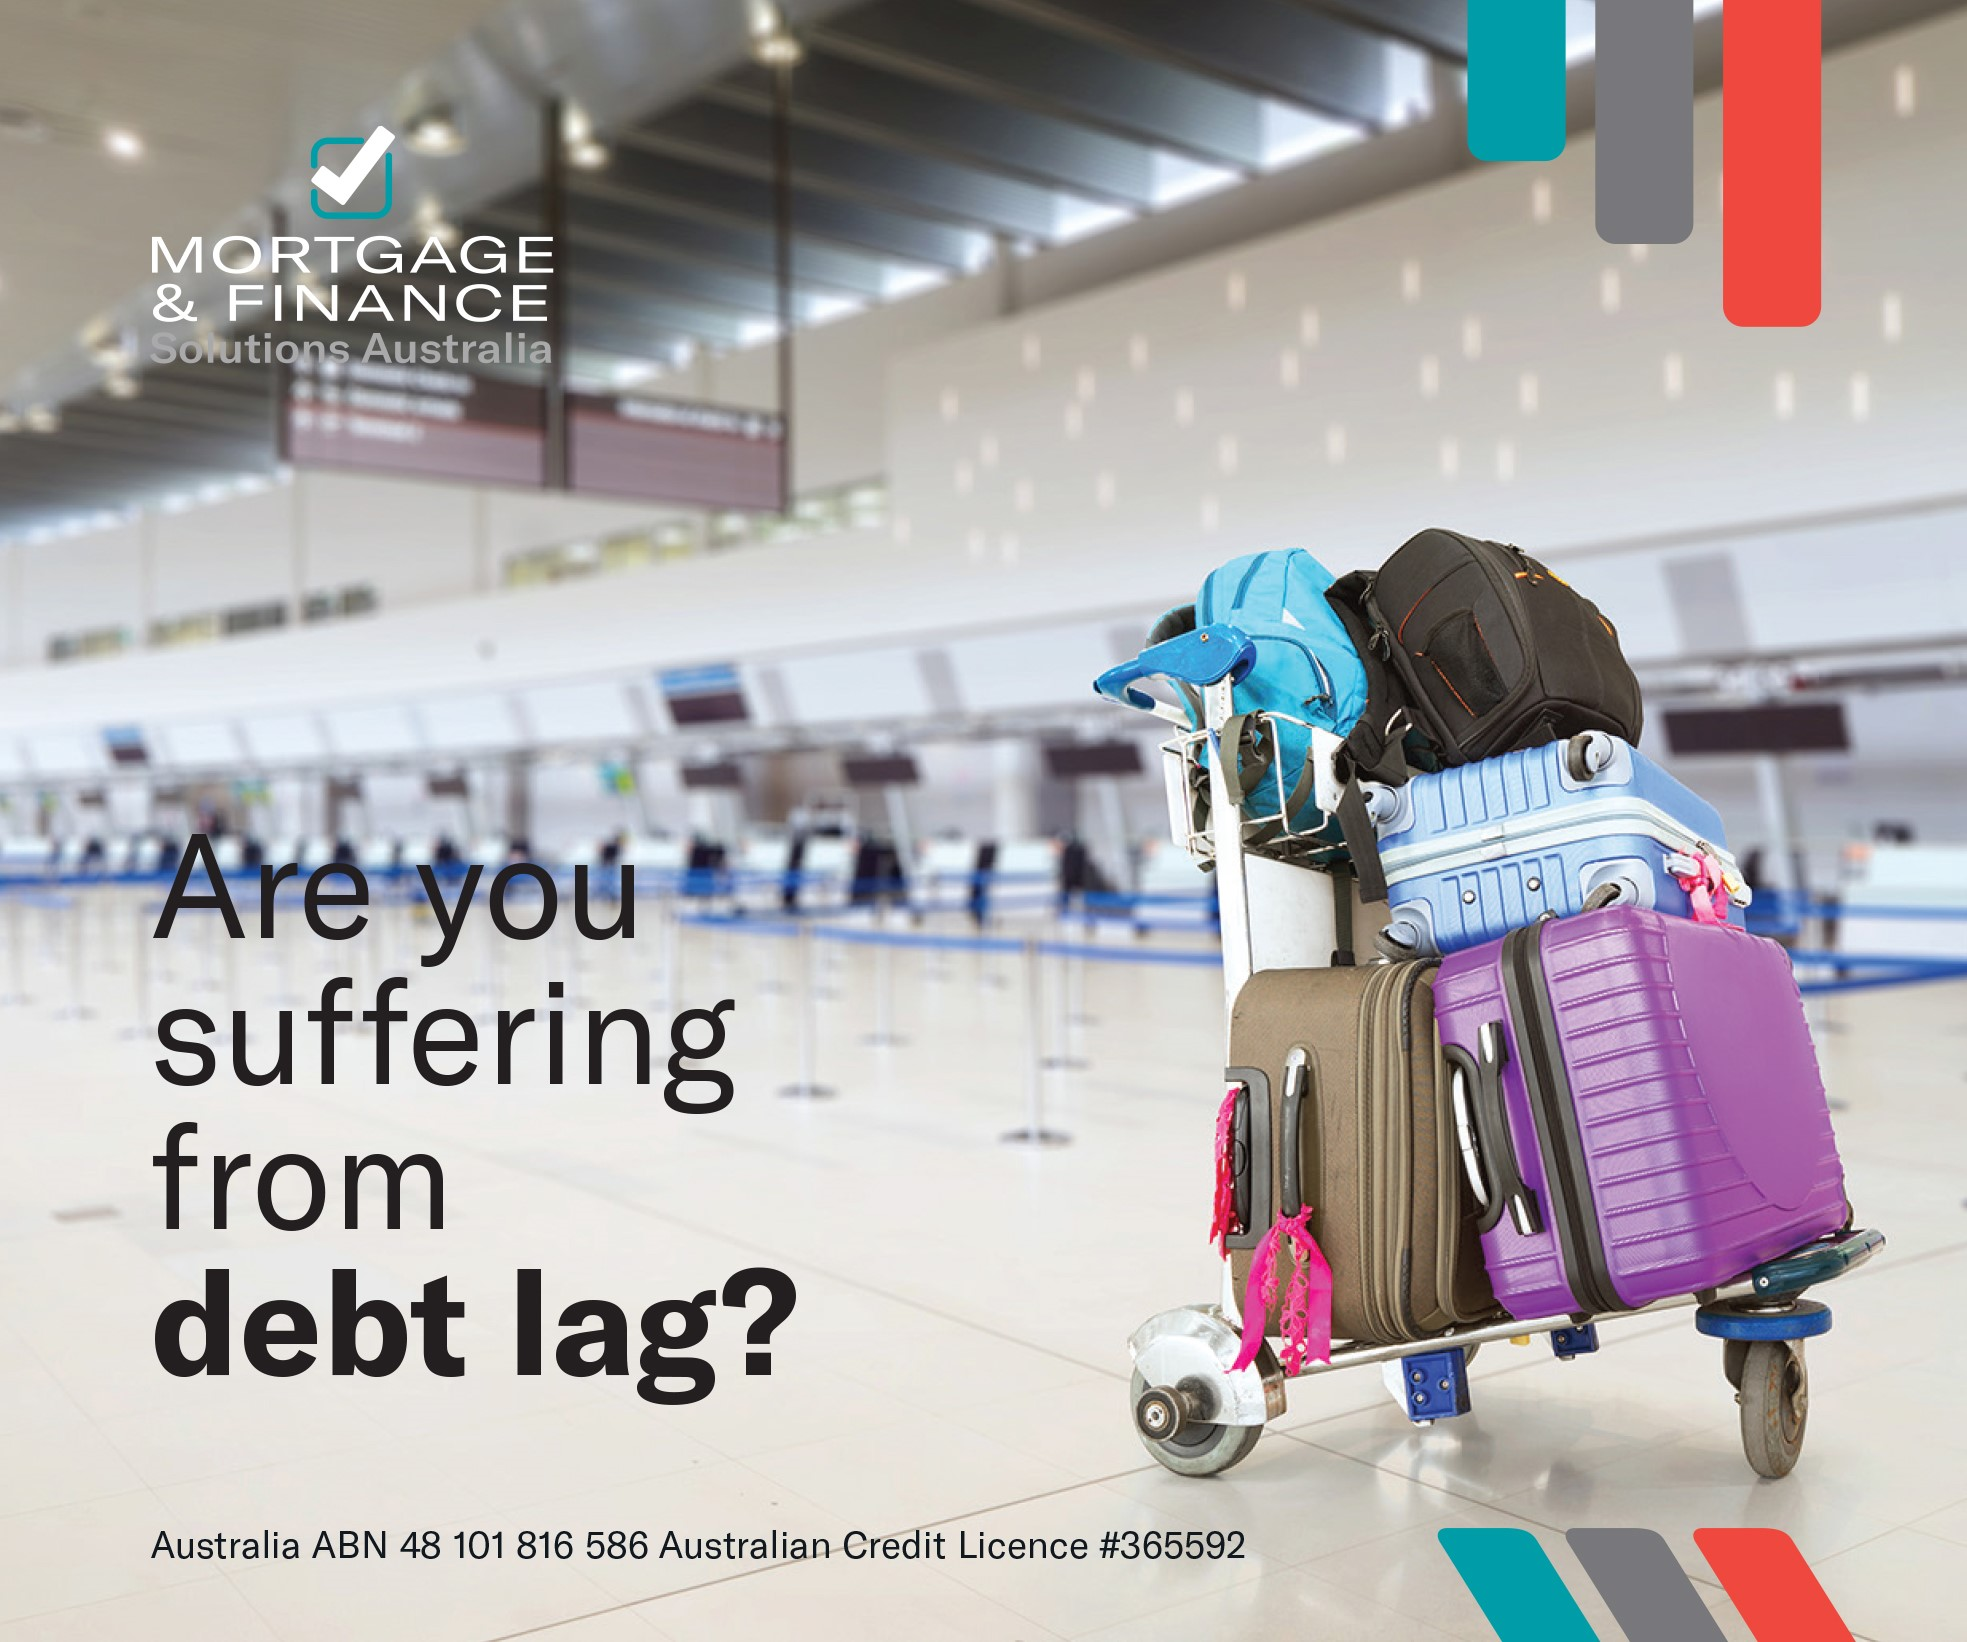 Are you suffering from DEBT LAG?